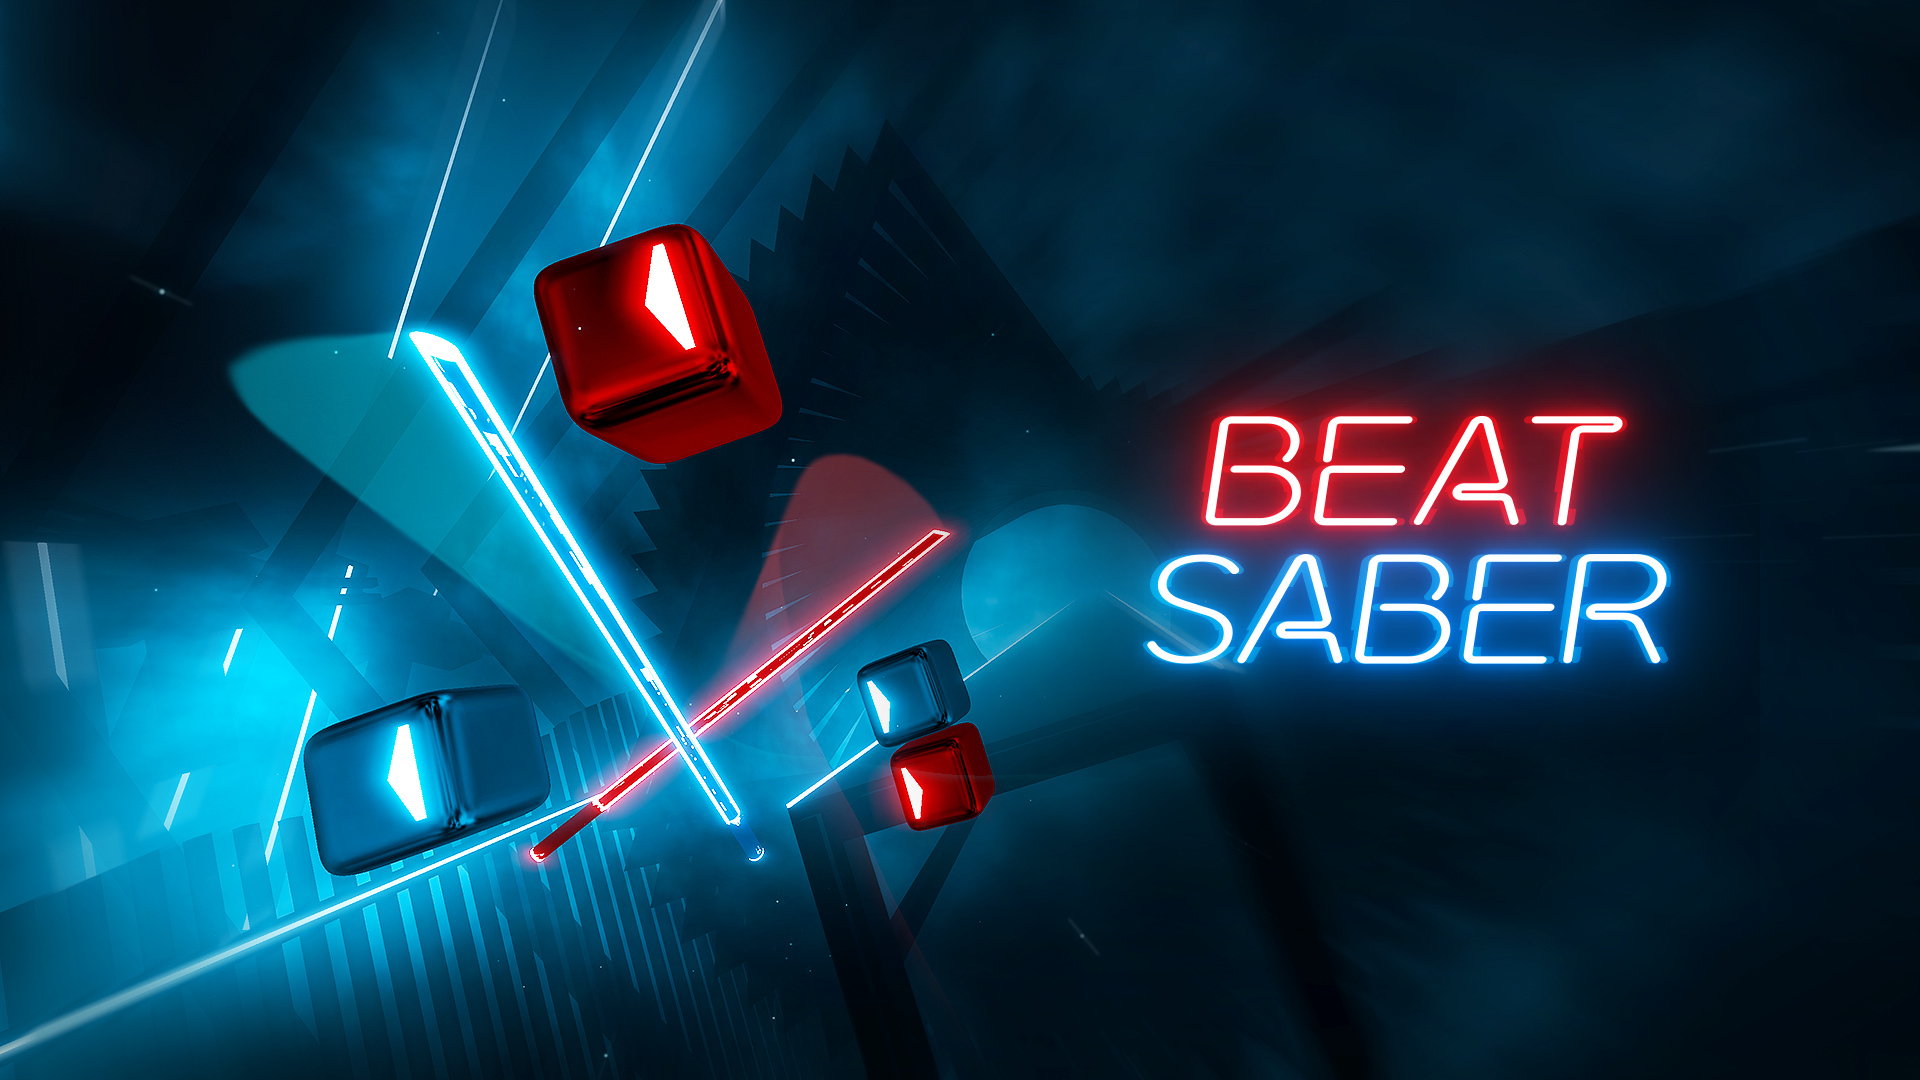 Beat Saber Video Game HD Wallpaper 67665 1920x1080px